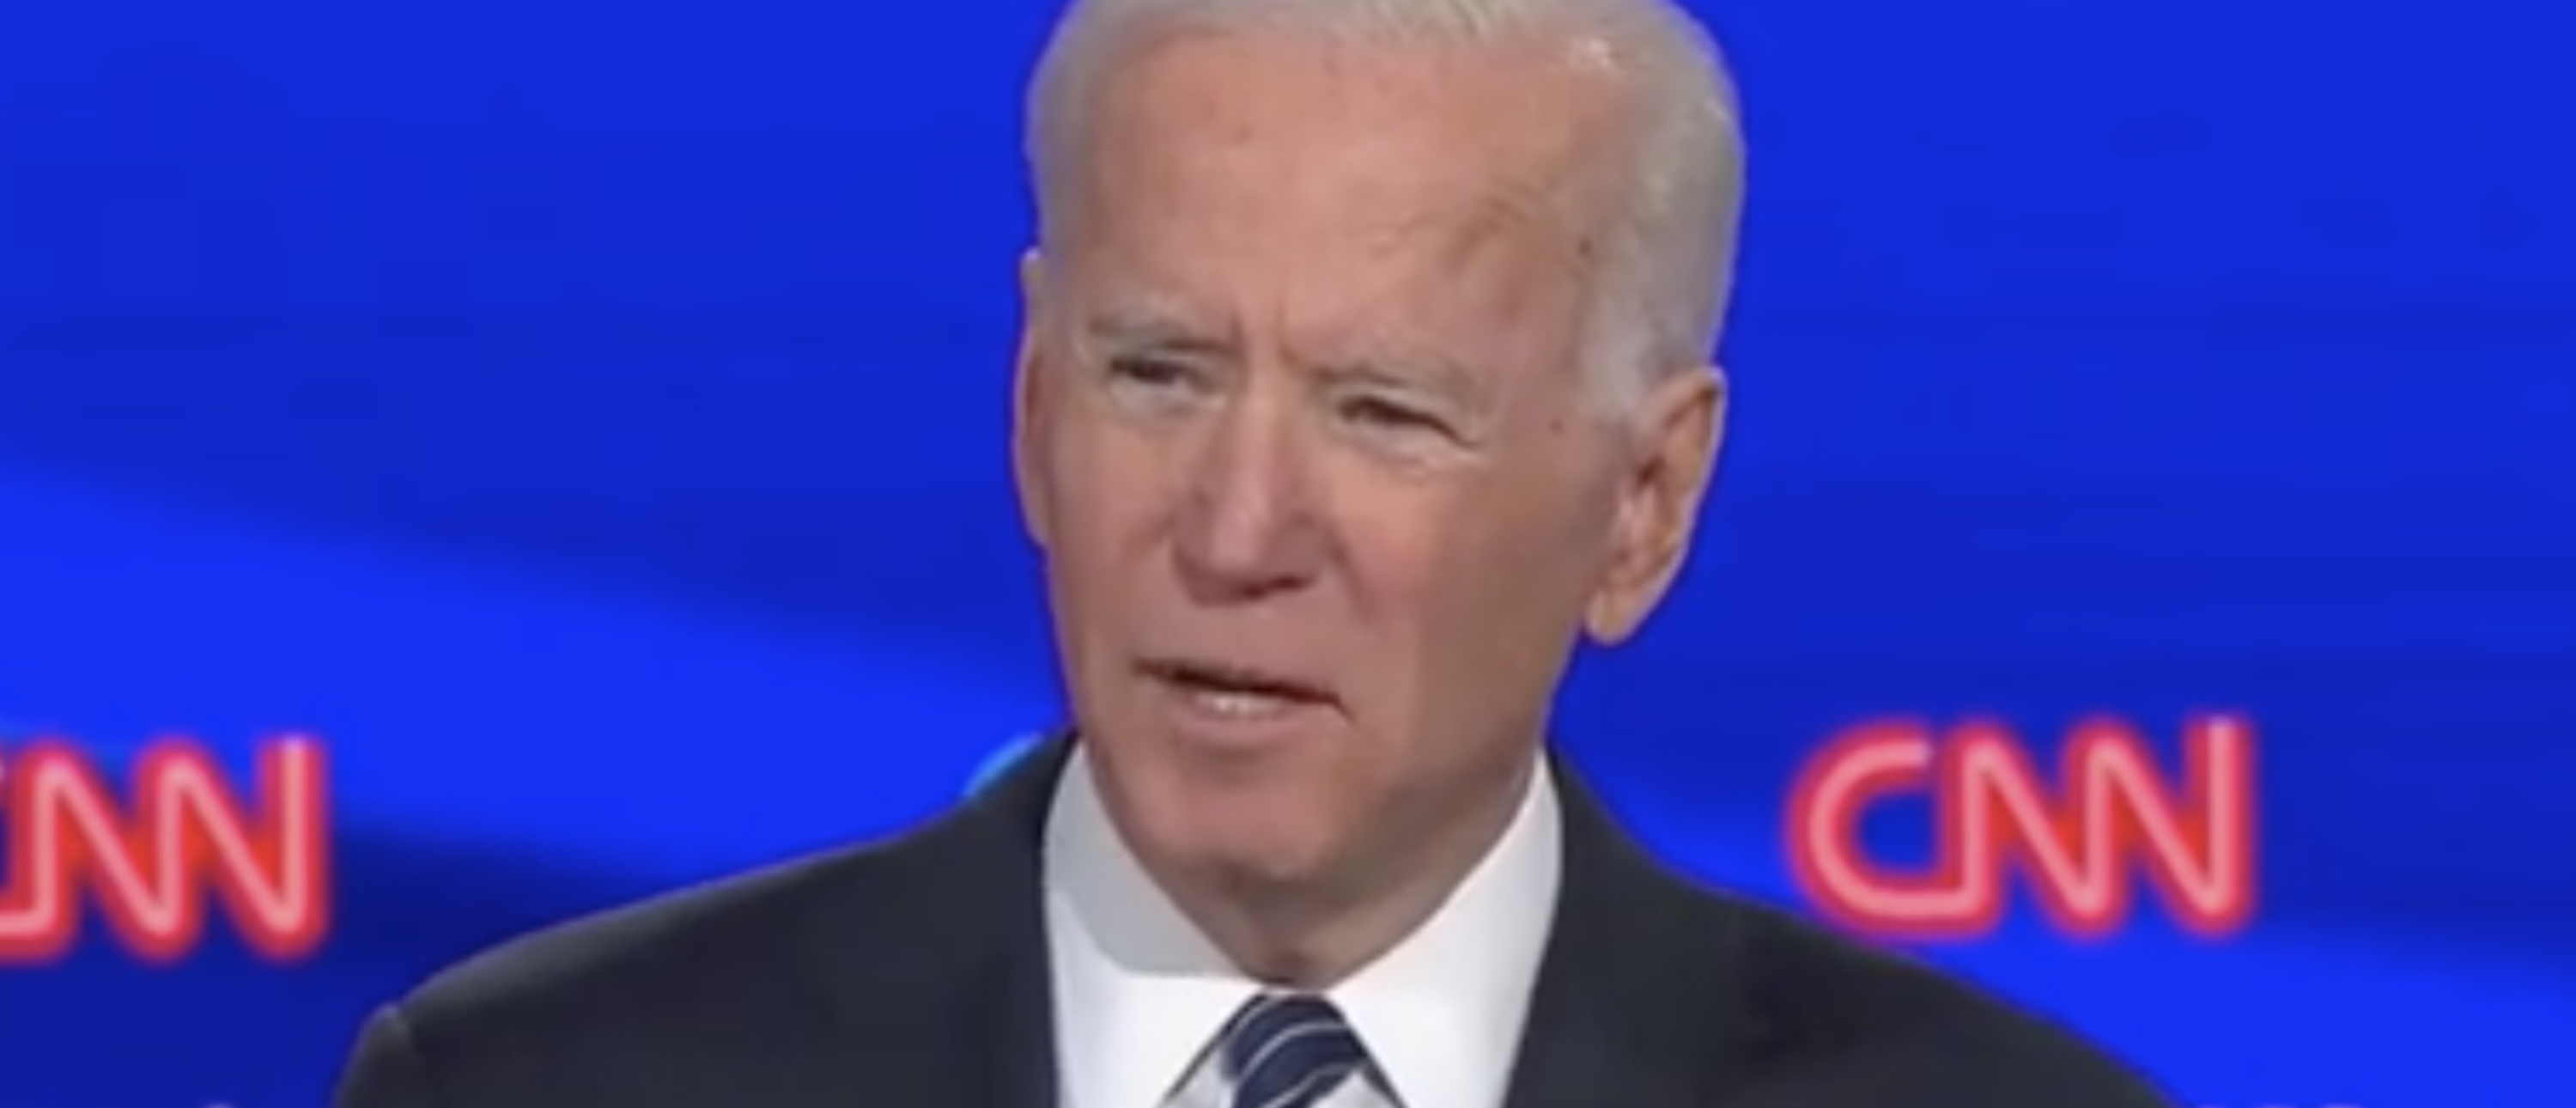 Biden Says Obama's Nuclear Deal With Iran Was 'Working' Before Trump Pulled US Out